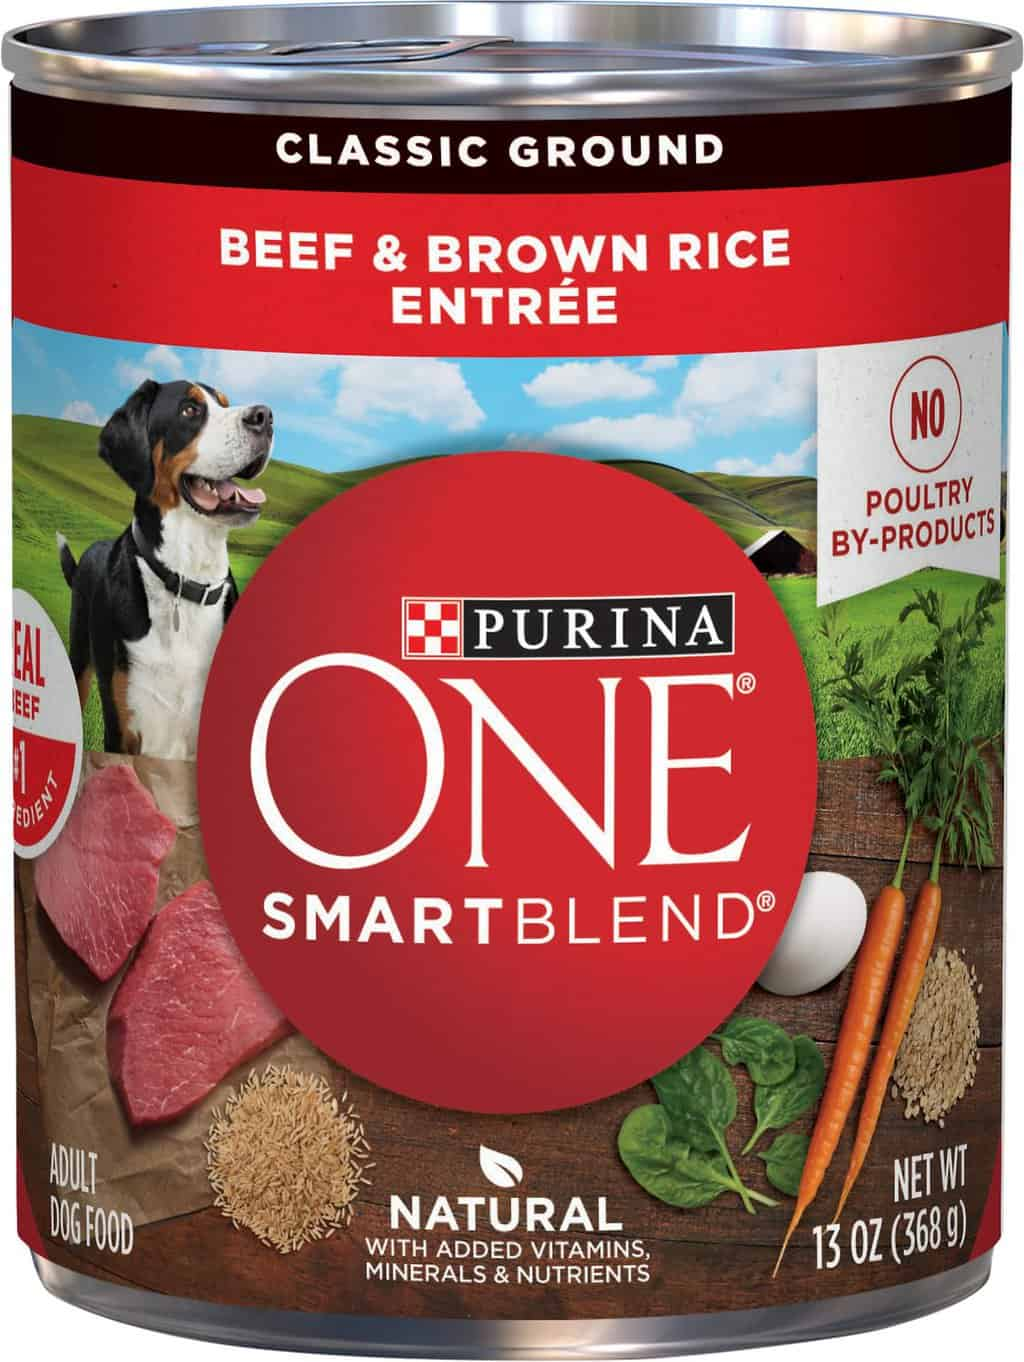 Purina One Dog Food: 2021 Reviews, Recalls & Coupons 16